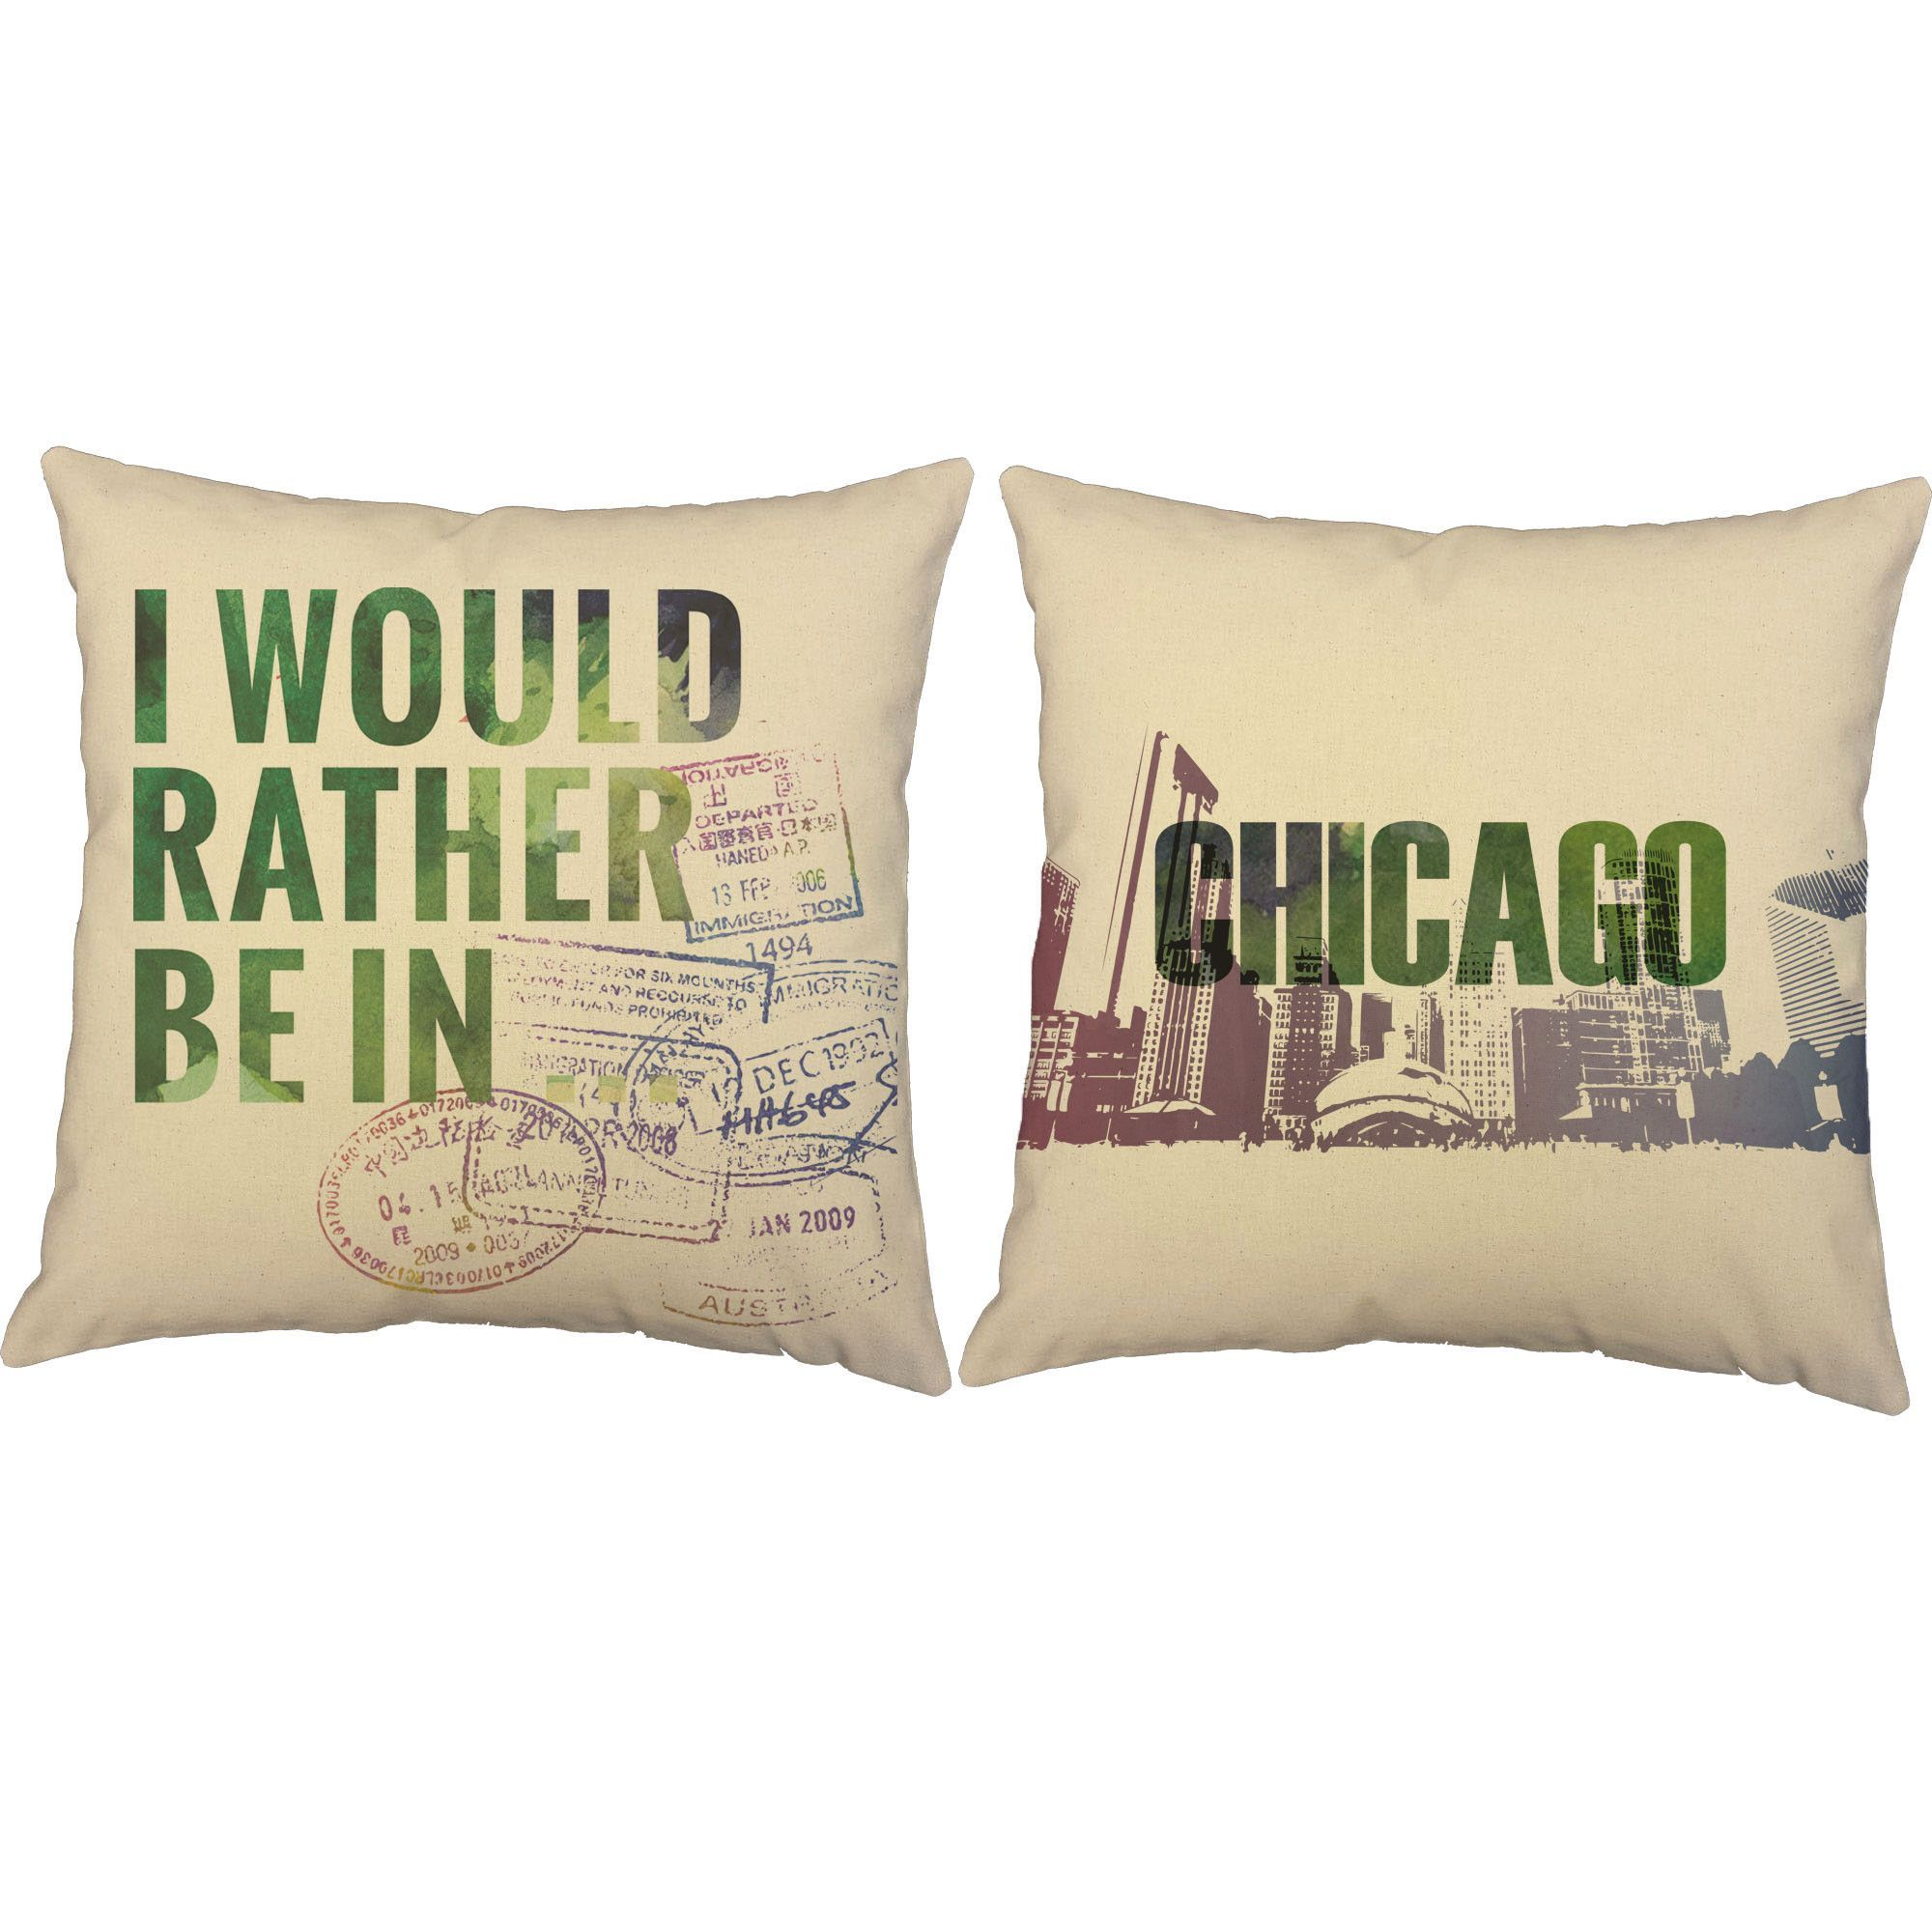 I'd Rather Be In Chicago Throw Pillows - Set of 2